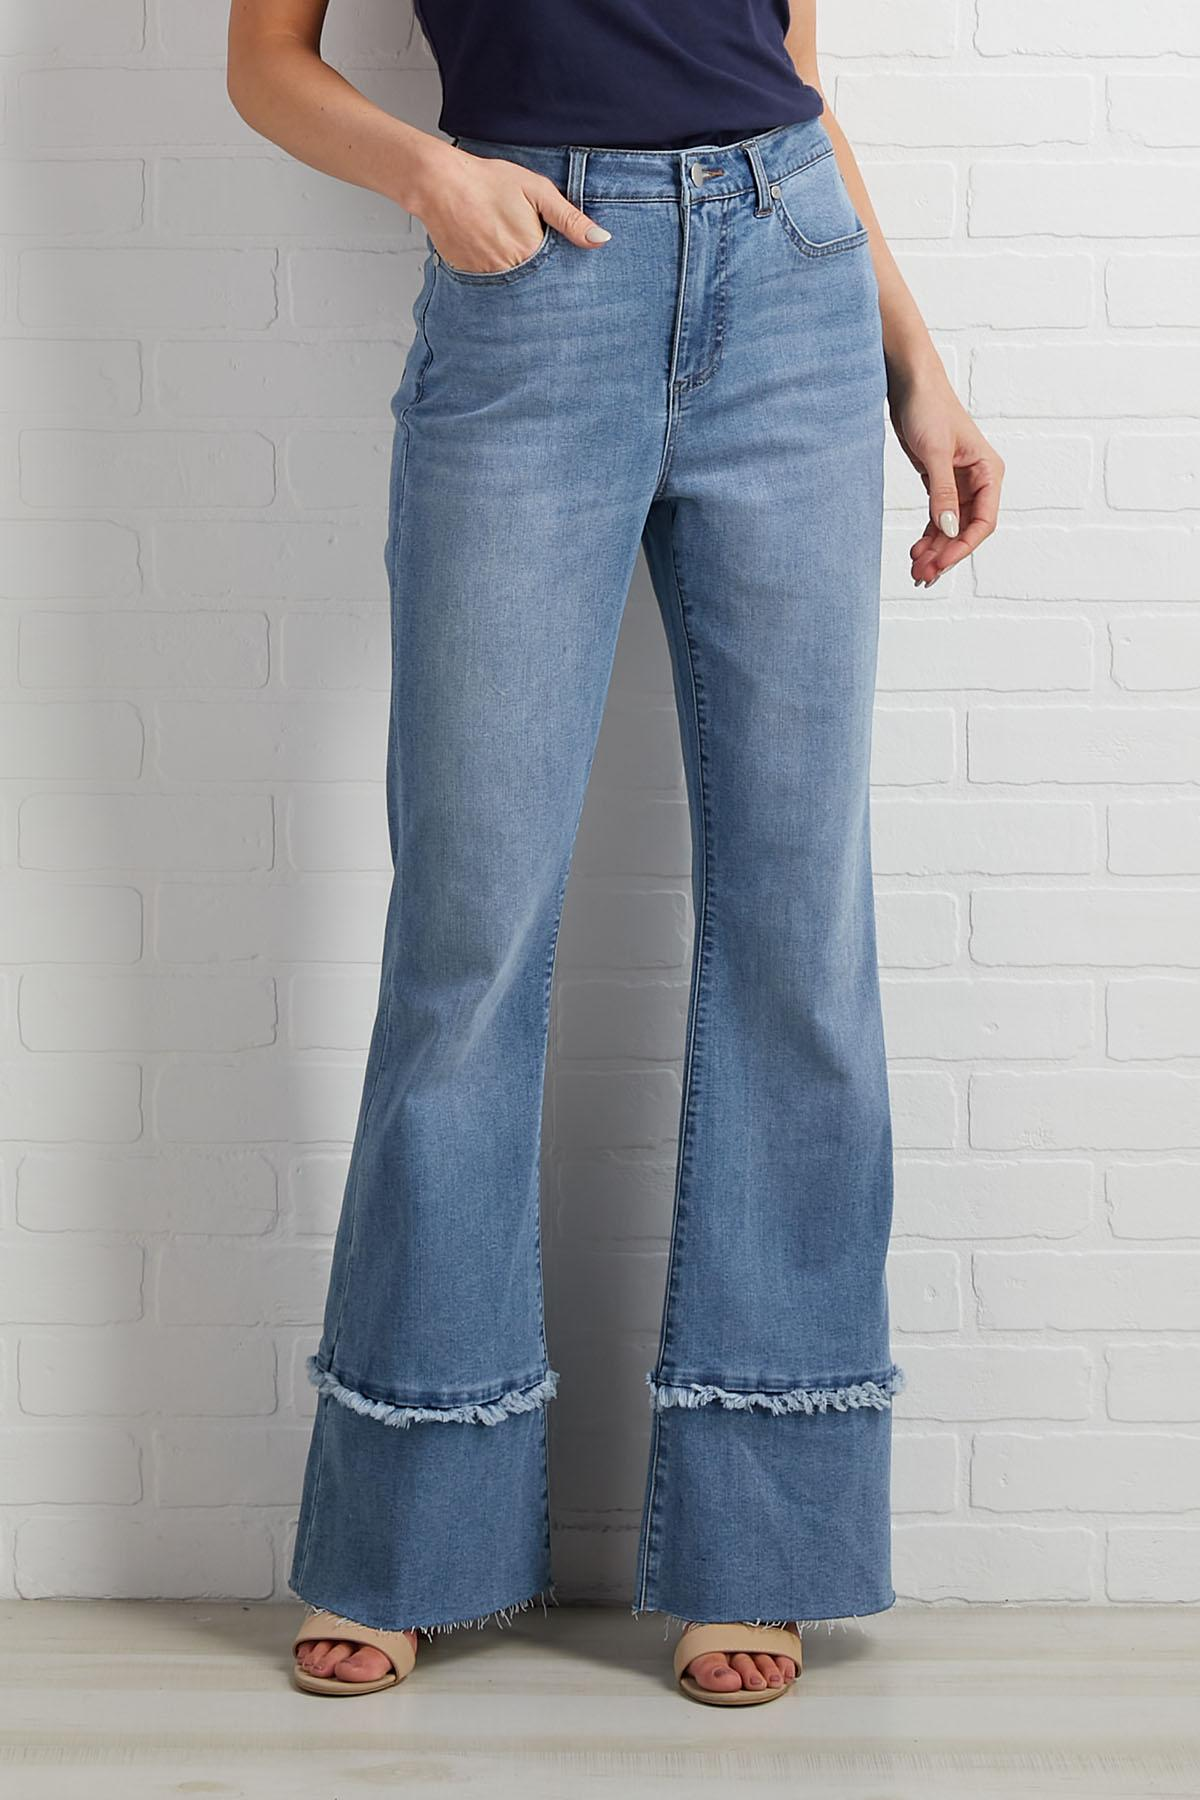 MEDIUM_WASH_DENIM